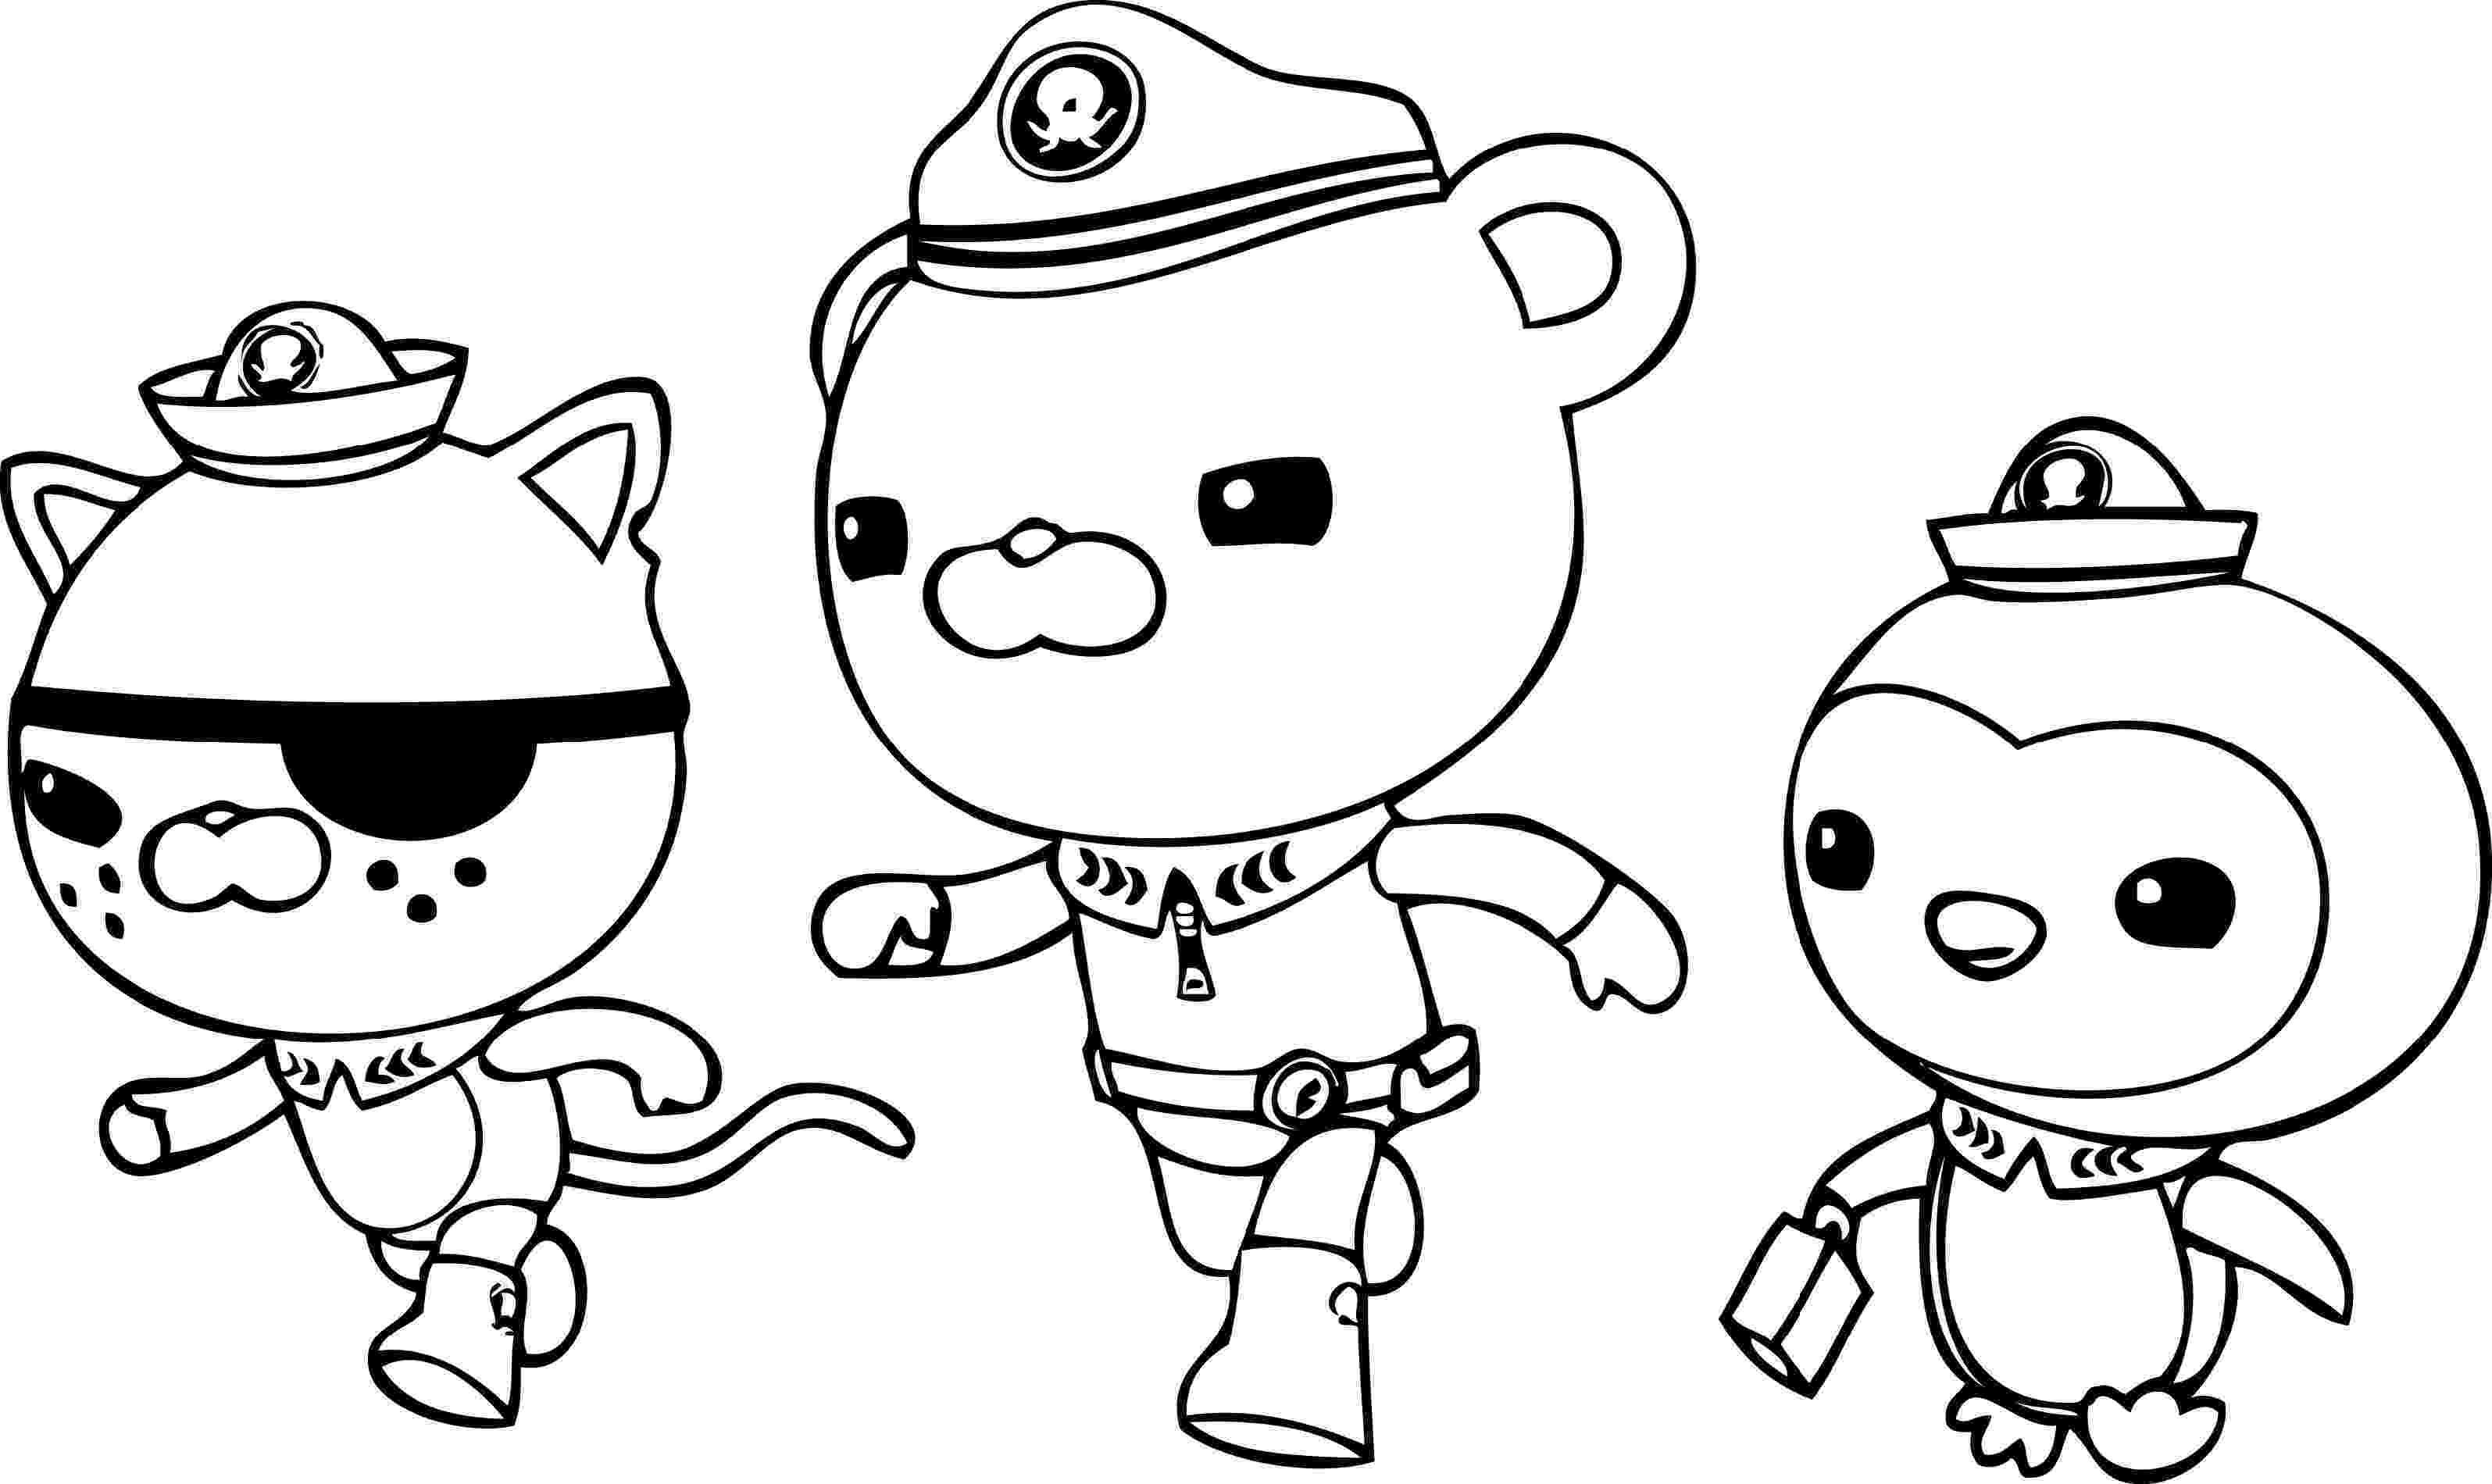 octonauts coloring octonauts coloring pages for learning educative printable octonauts coloring